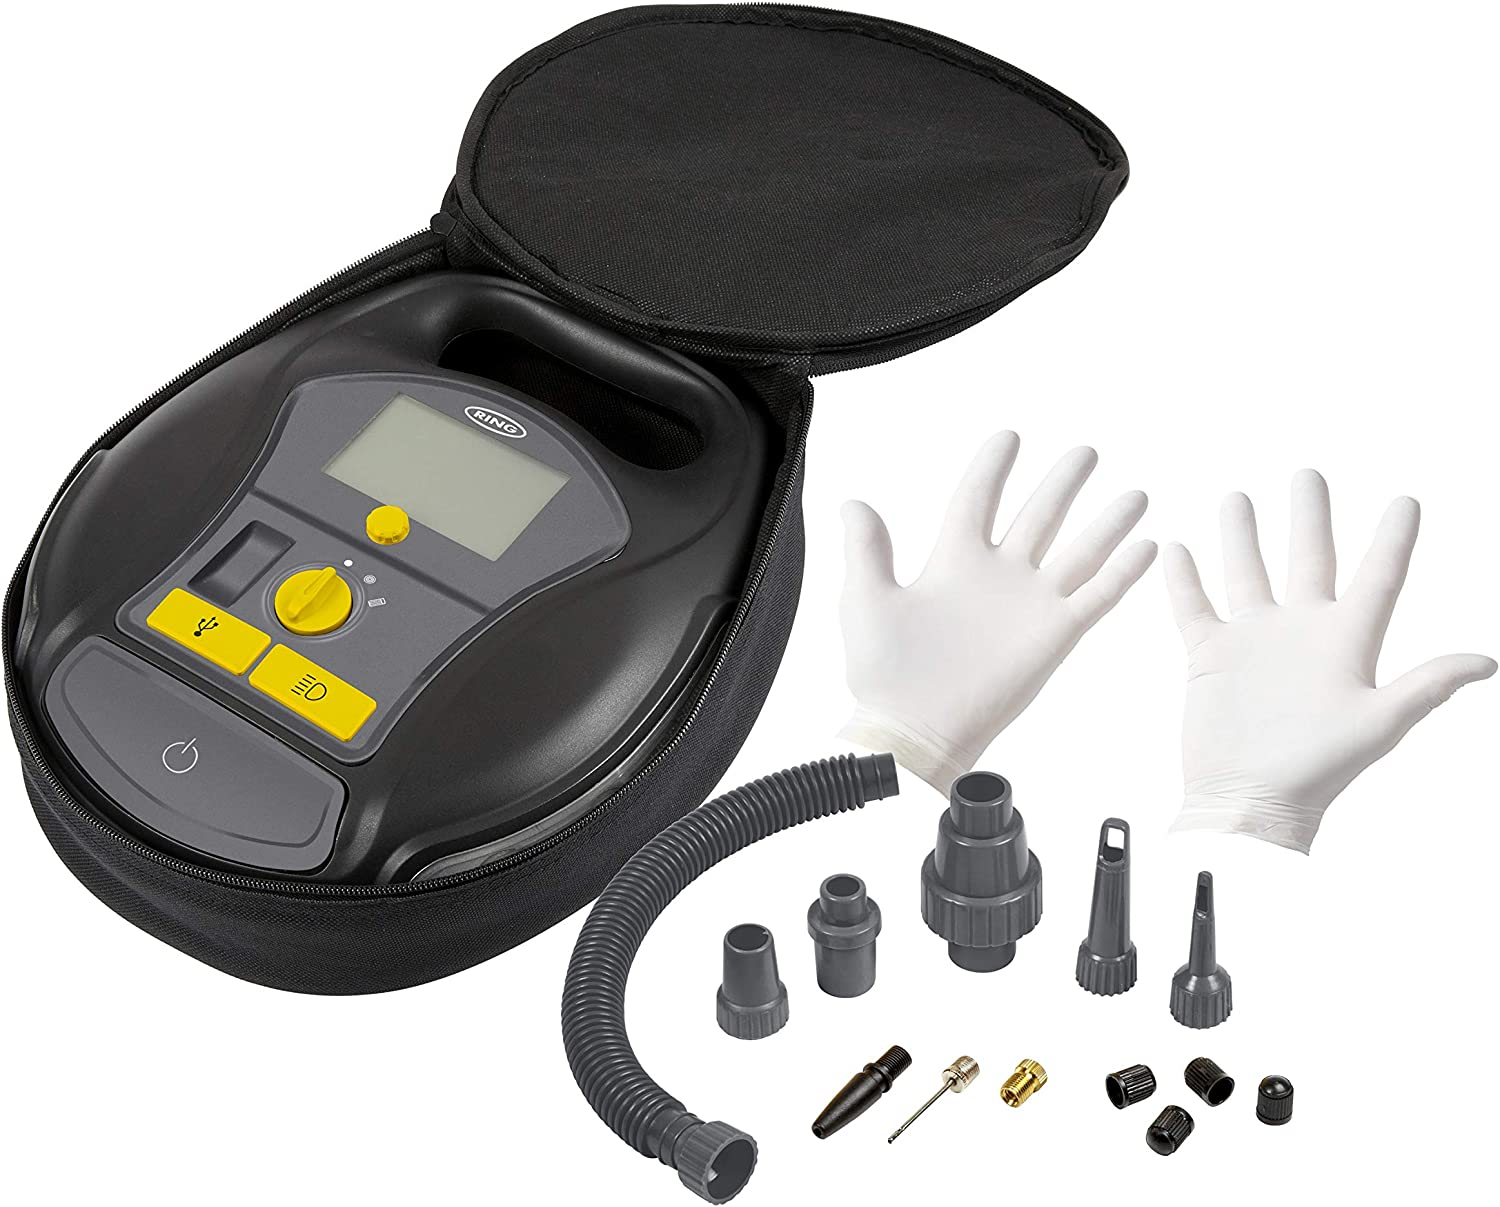 Latex Gloves and Storage Case Valve Caps Large Digital Screen Power Bank LED Light Quick Set Auto Stop Ring RTC6000 Cordless 4-in-1 Digital Tyre Inflator with Air Pump